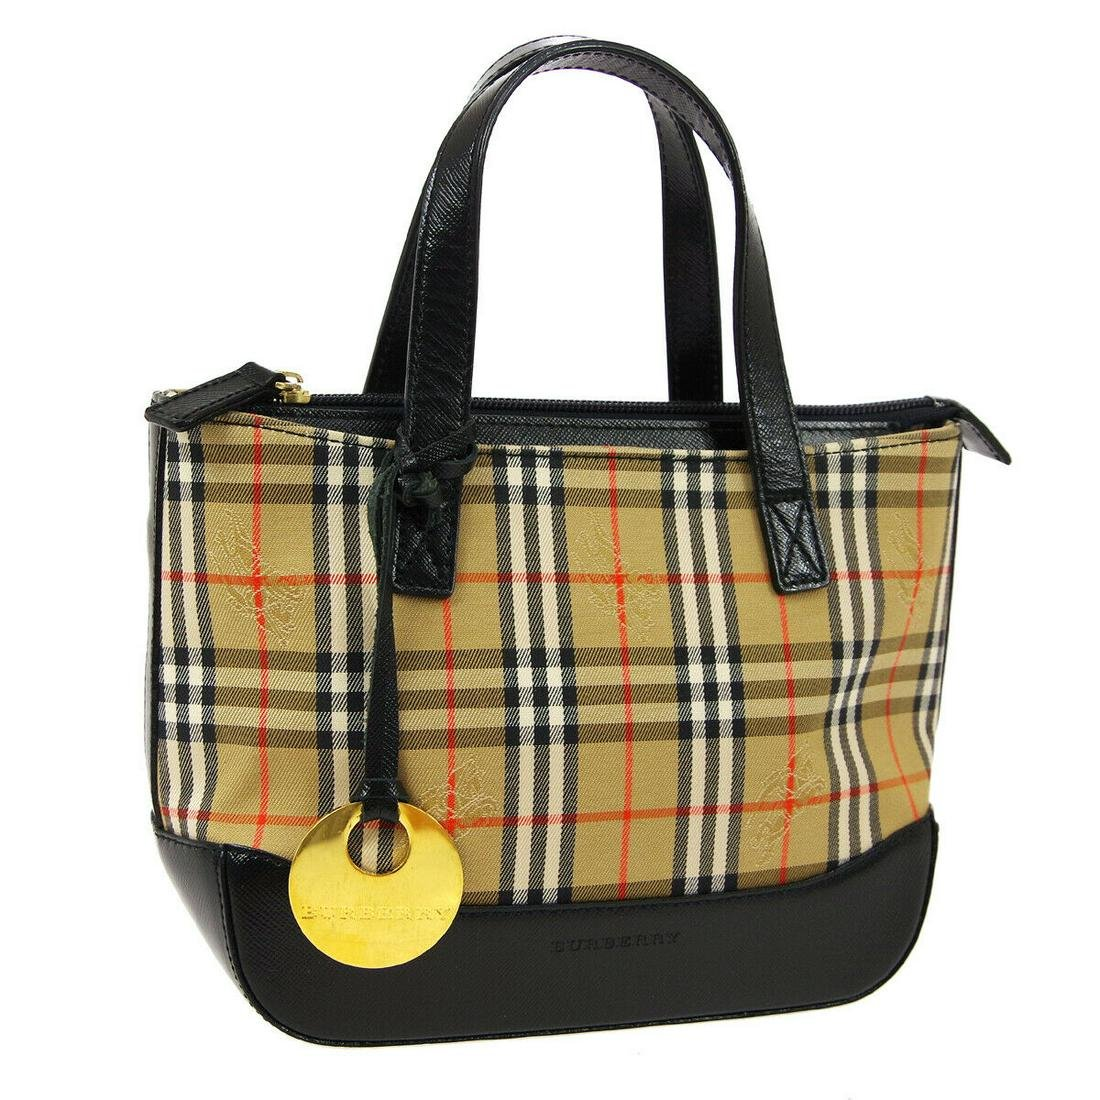 Authentic BURBERRY Canvas, Leather Hand Bag